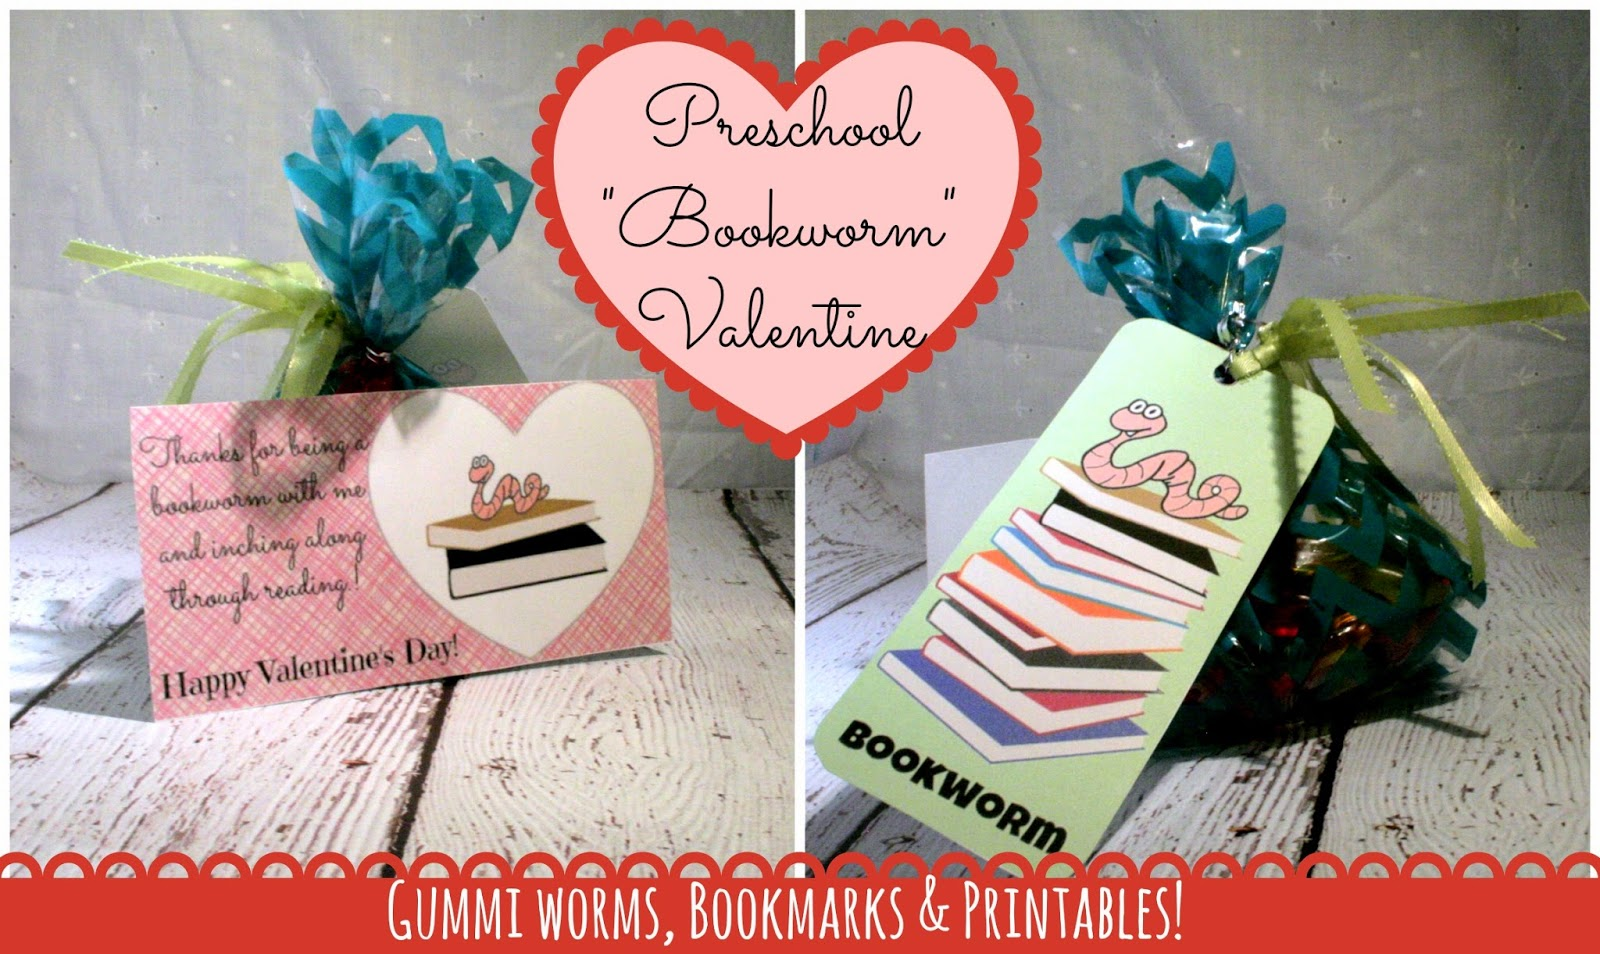 Preschool DIY Bookworm Valentines Printables We Got the FUNK – Valentine Cards Ideas for Preschoolers